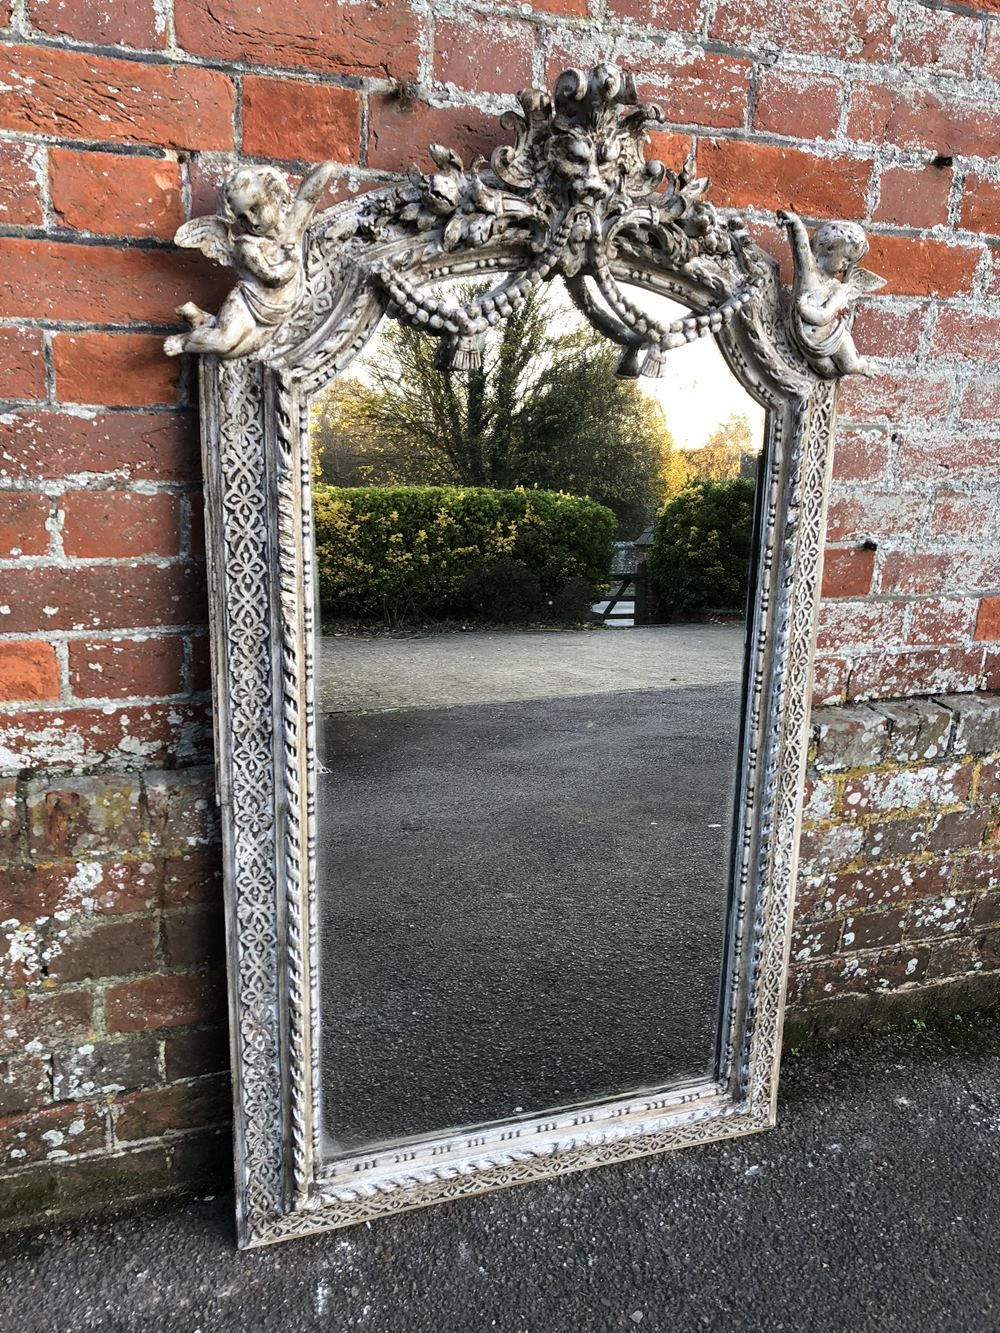 A Stunning Antique 19th Century French Highly Decorative Carved Wood And Gesso Shaped Top Distressed Painted Mirror In 2020 Mirror Painting Wood Carving Antiques